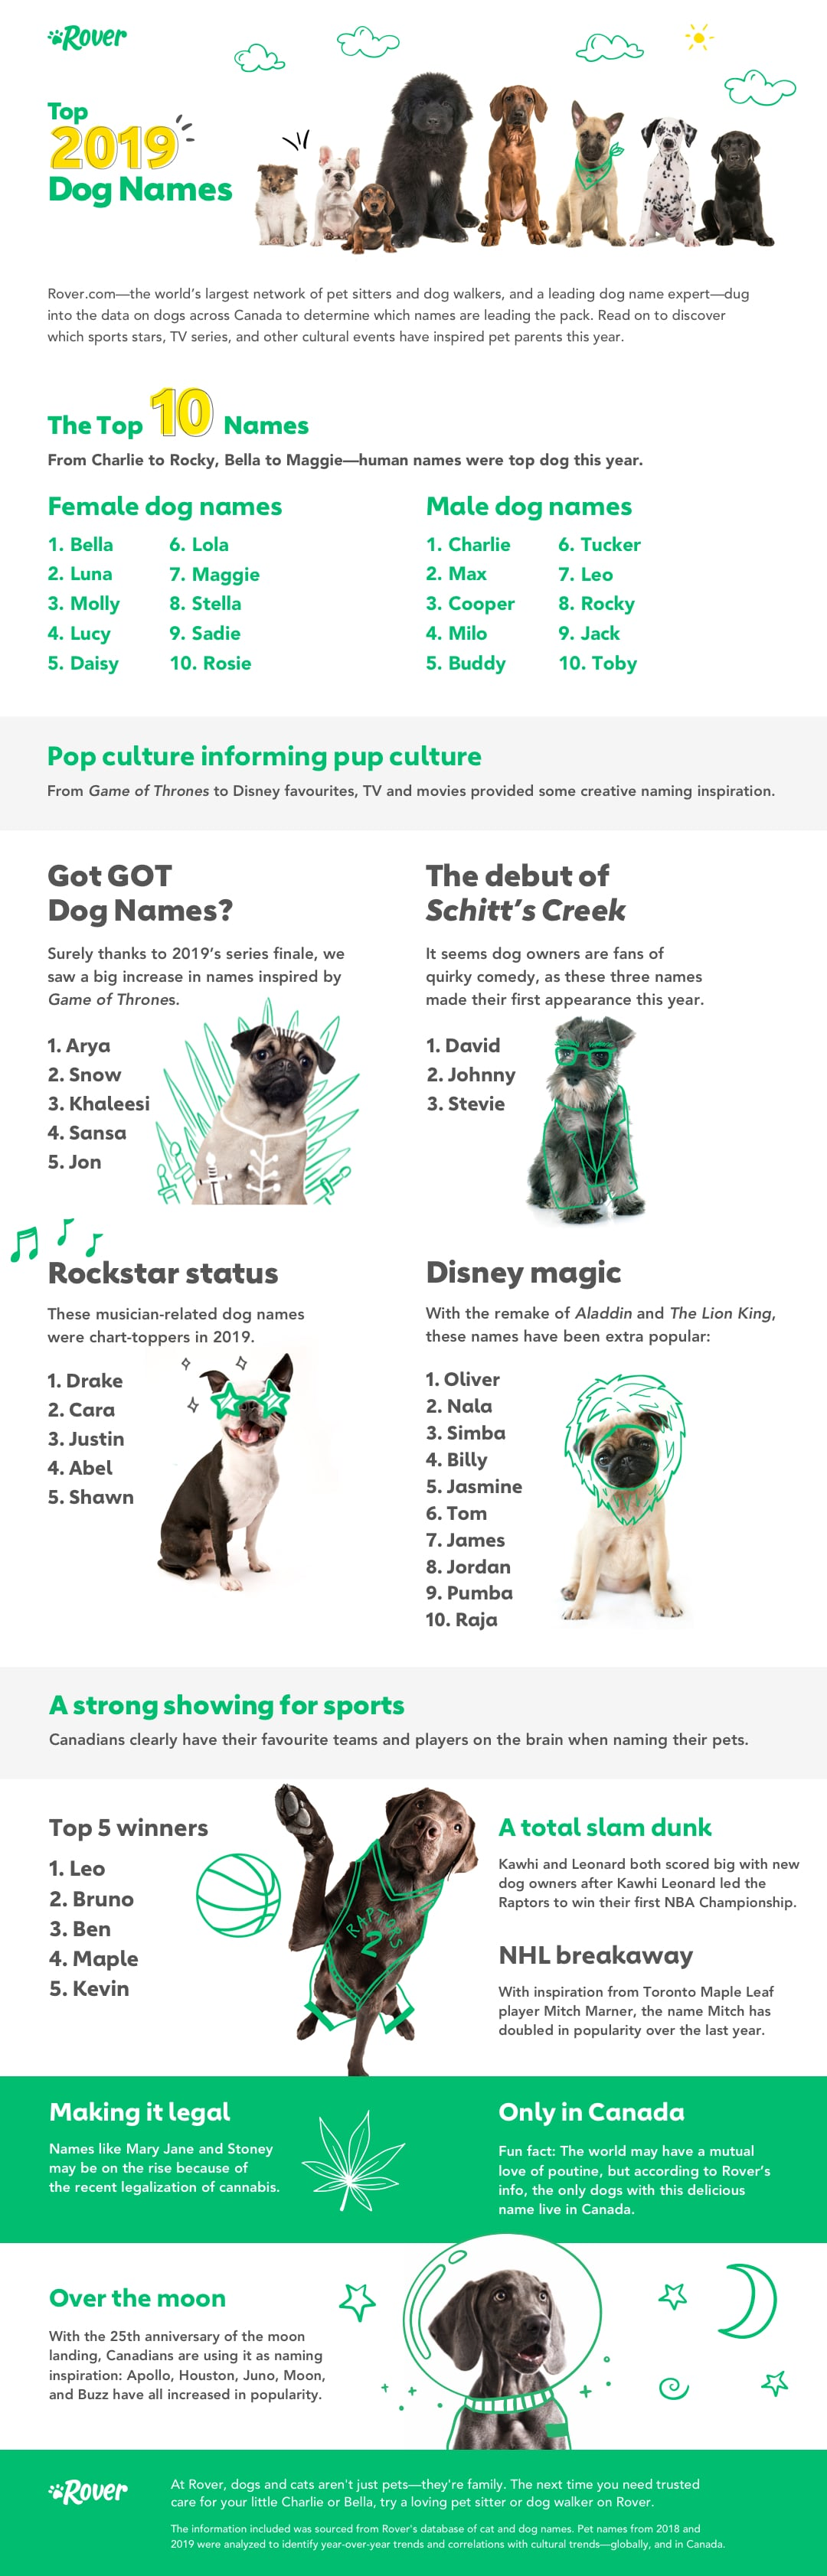 Canada S Top Dog Names Of 2019 The Dog People By Rover Com